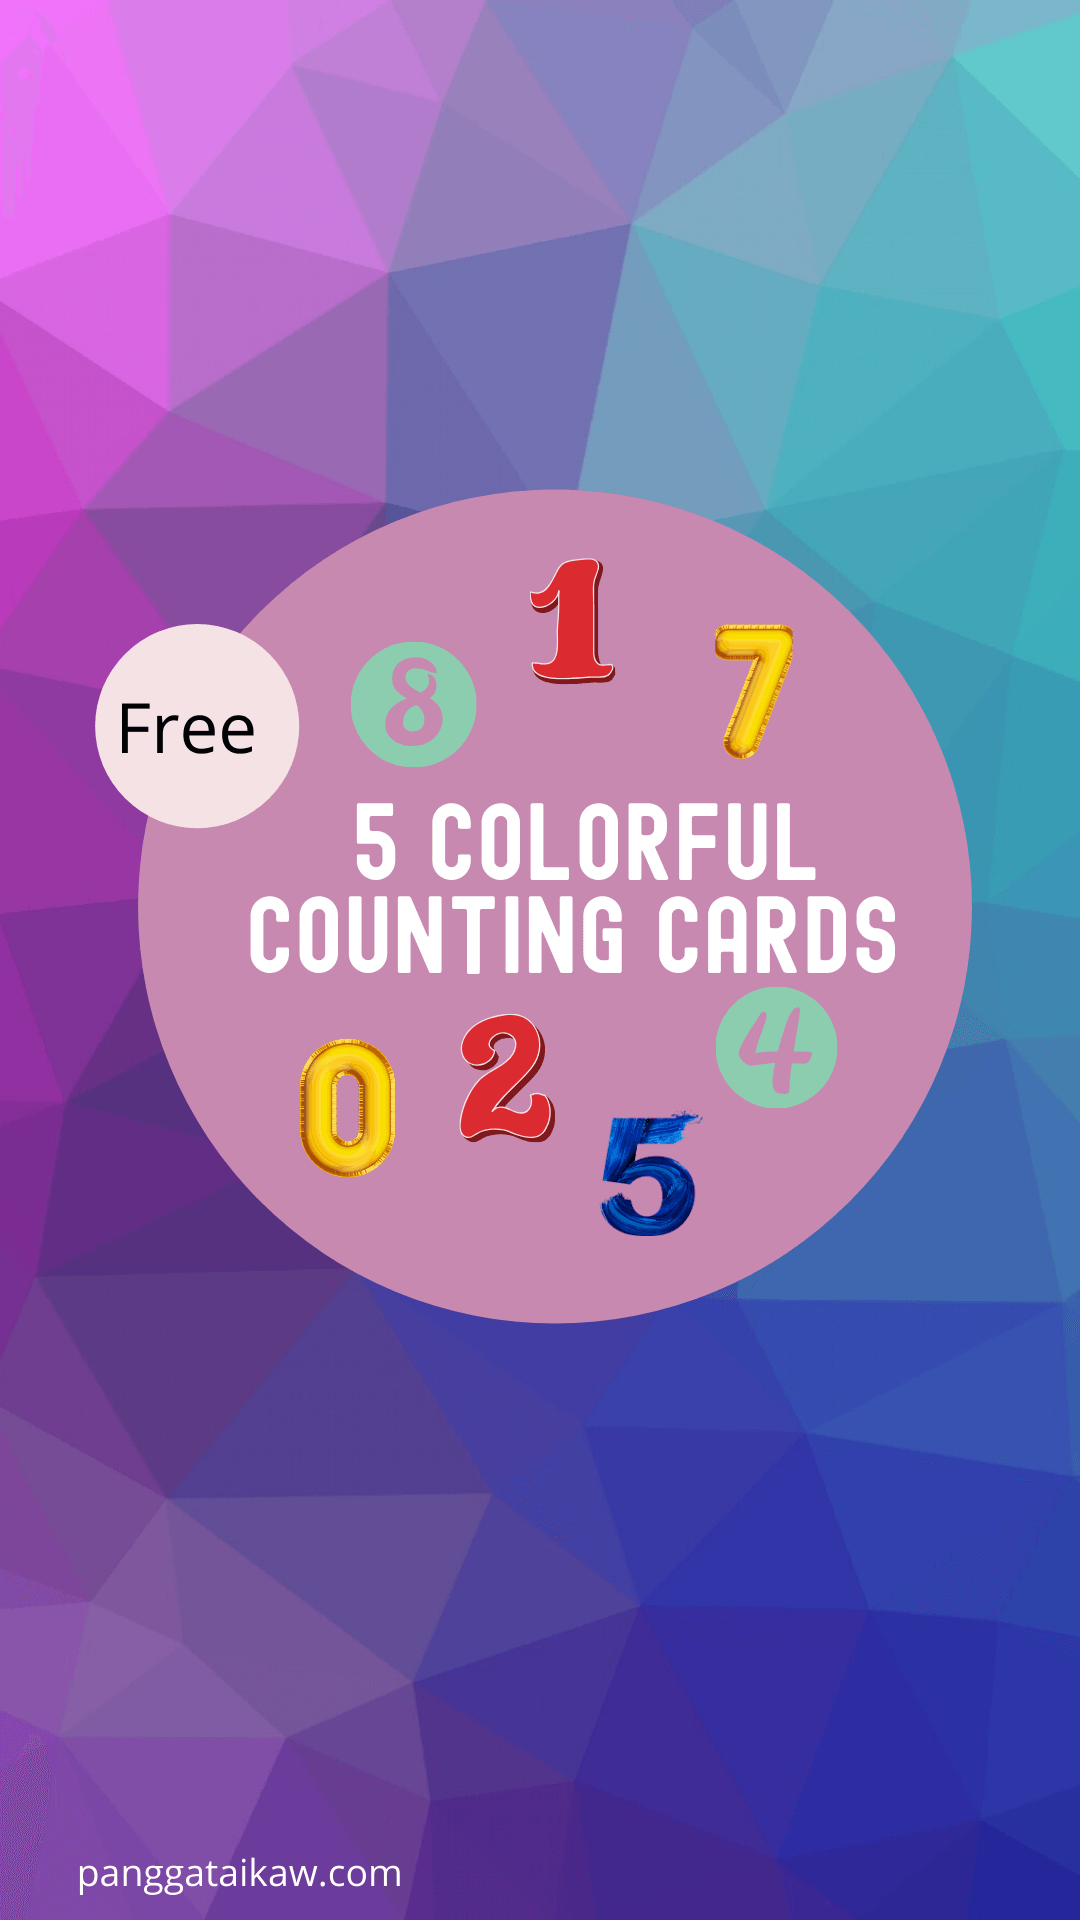 Free resources-Counting cards